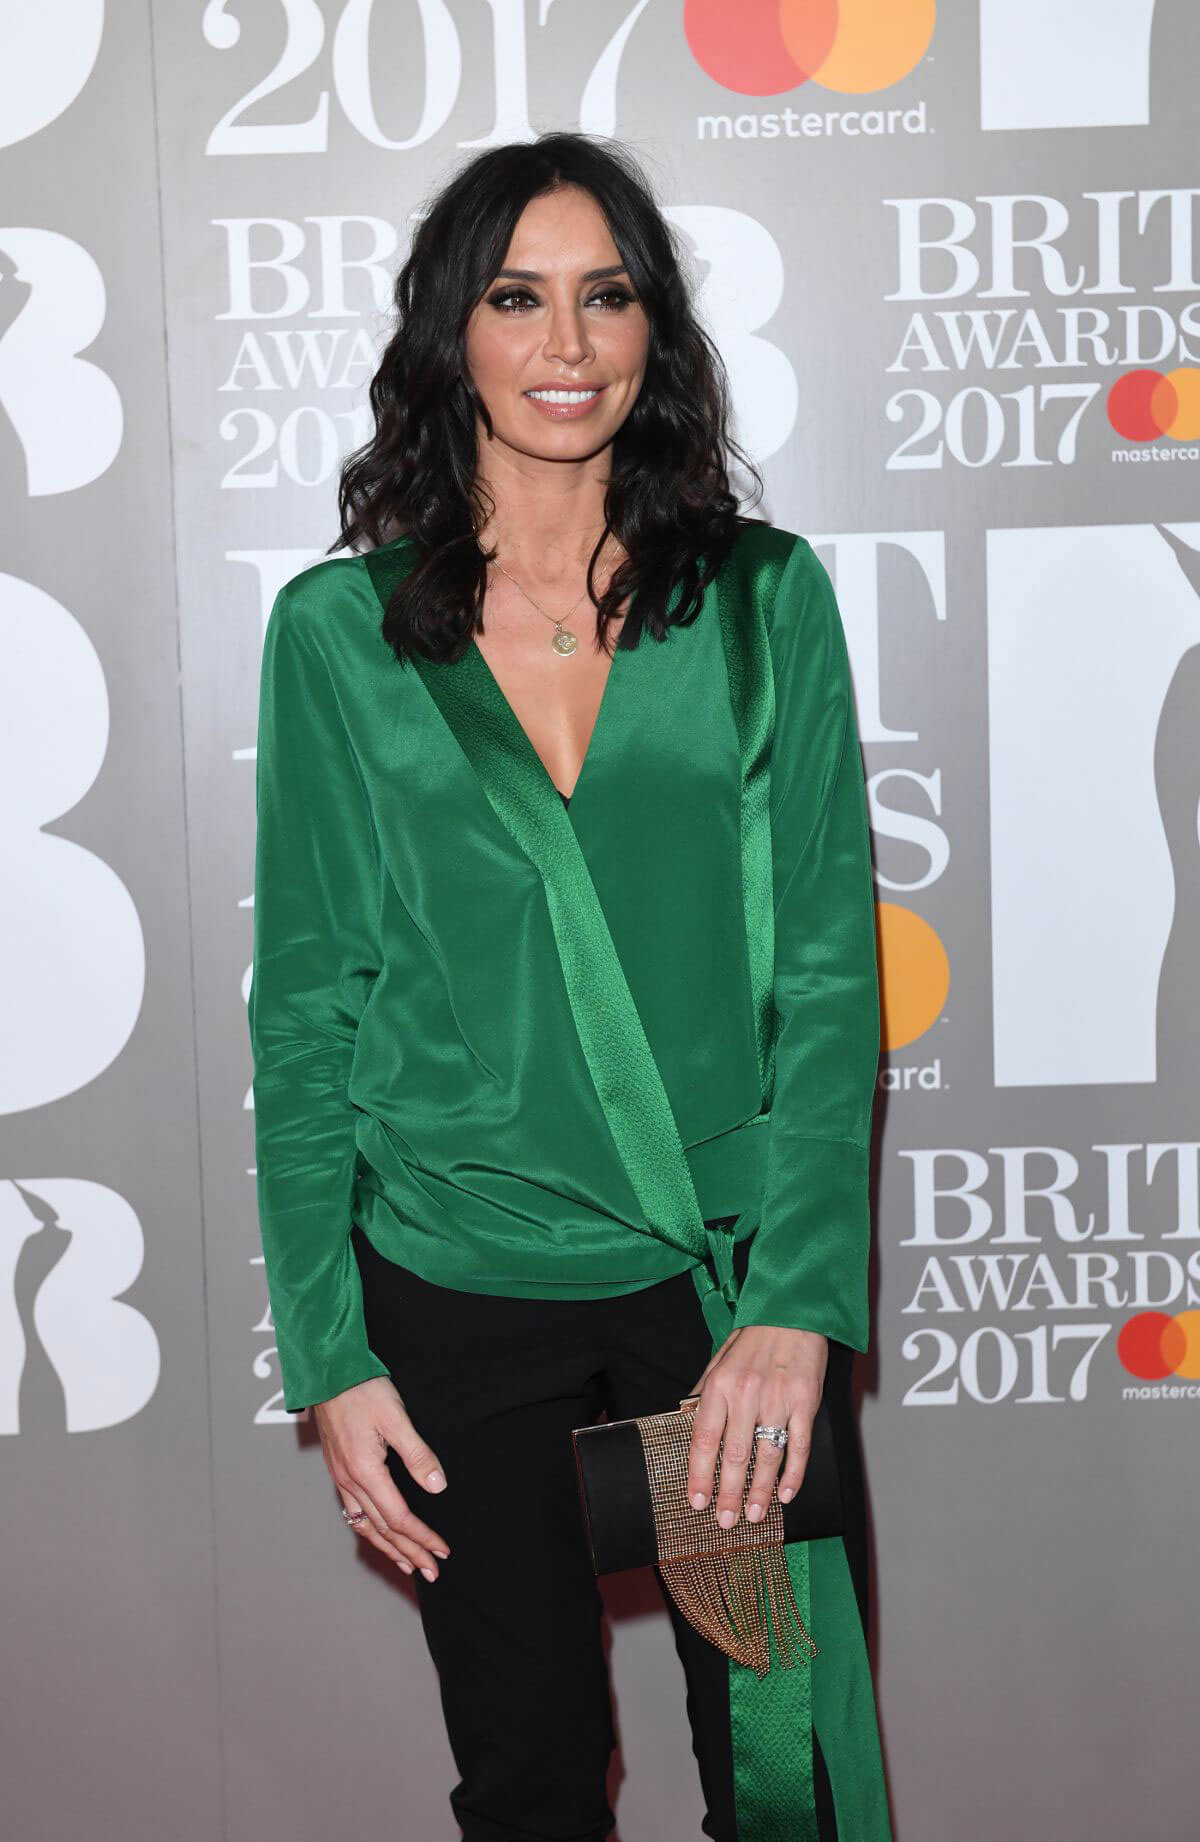 Christine Bleakley Stills at Brit Awards 2017 in London